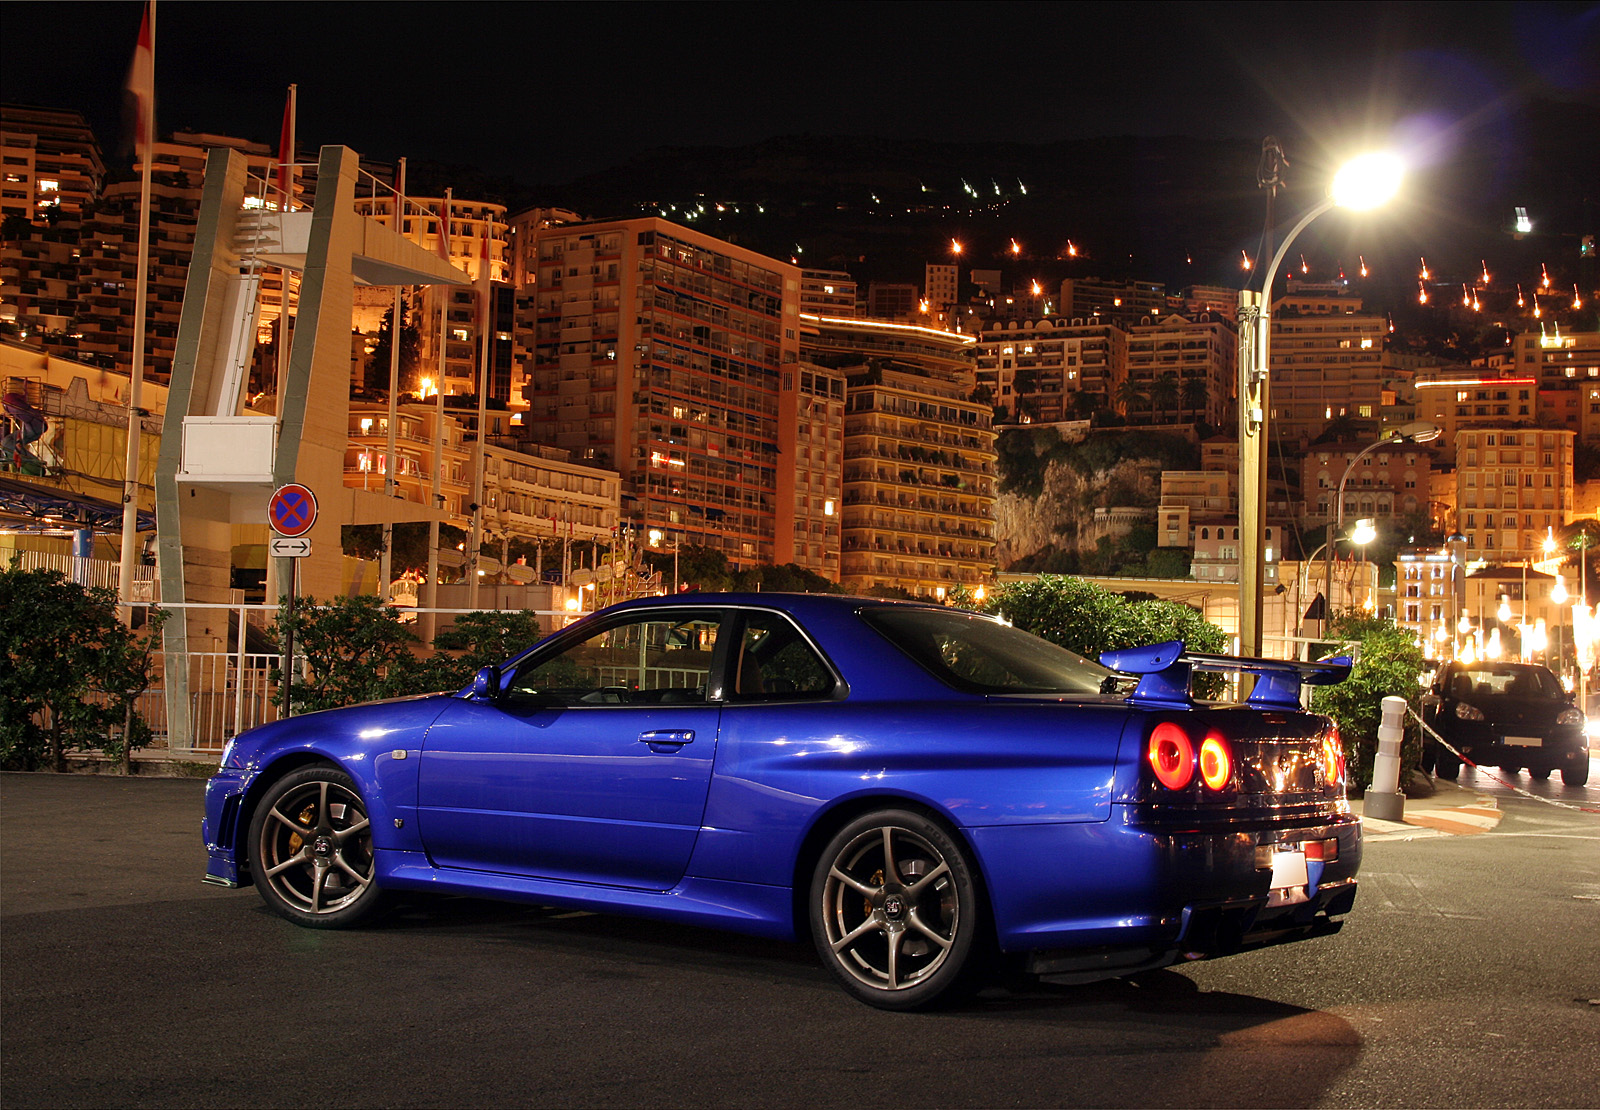 Nissan skyline gt r wallpaper and background image 1600x1110 id 55502 wallpaper abyss - Nissan skyline background ...